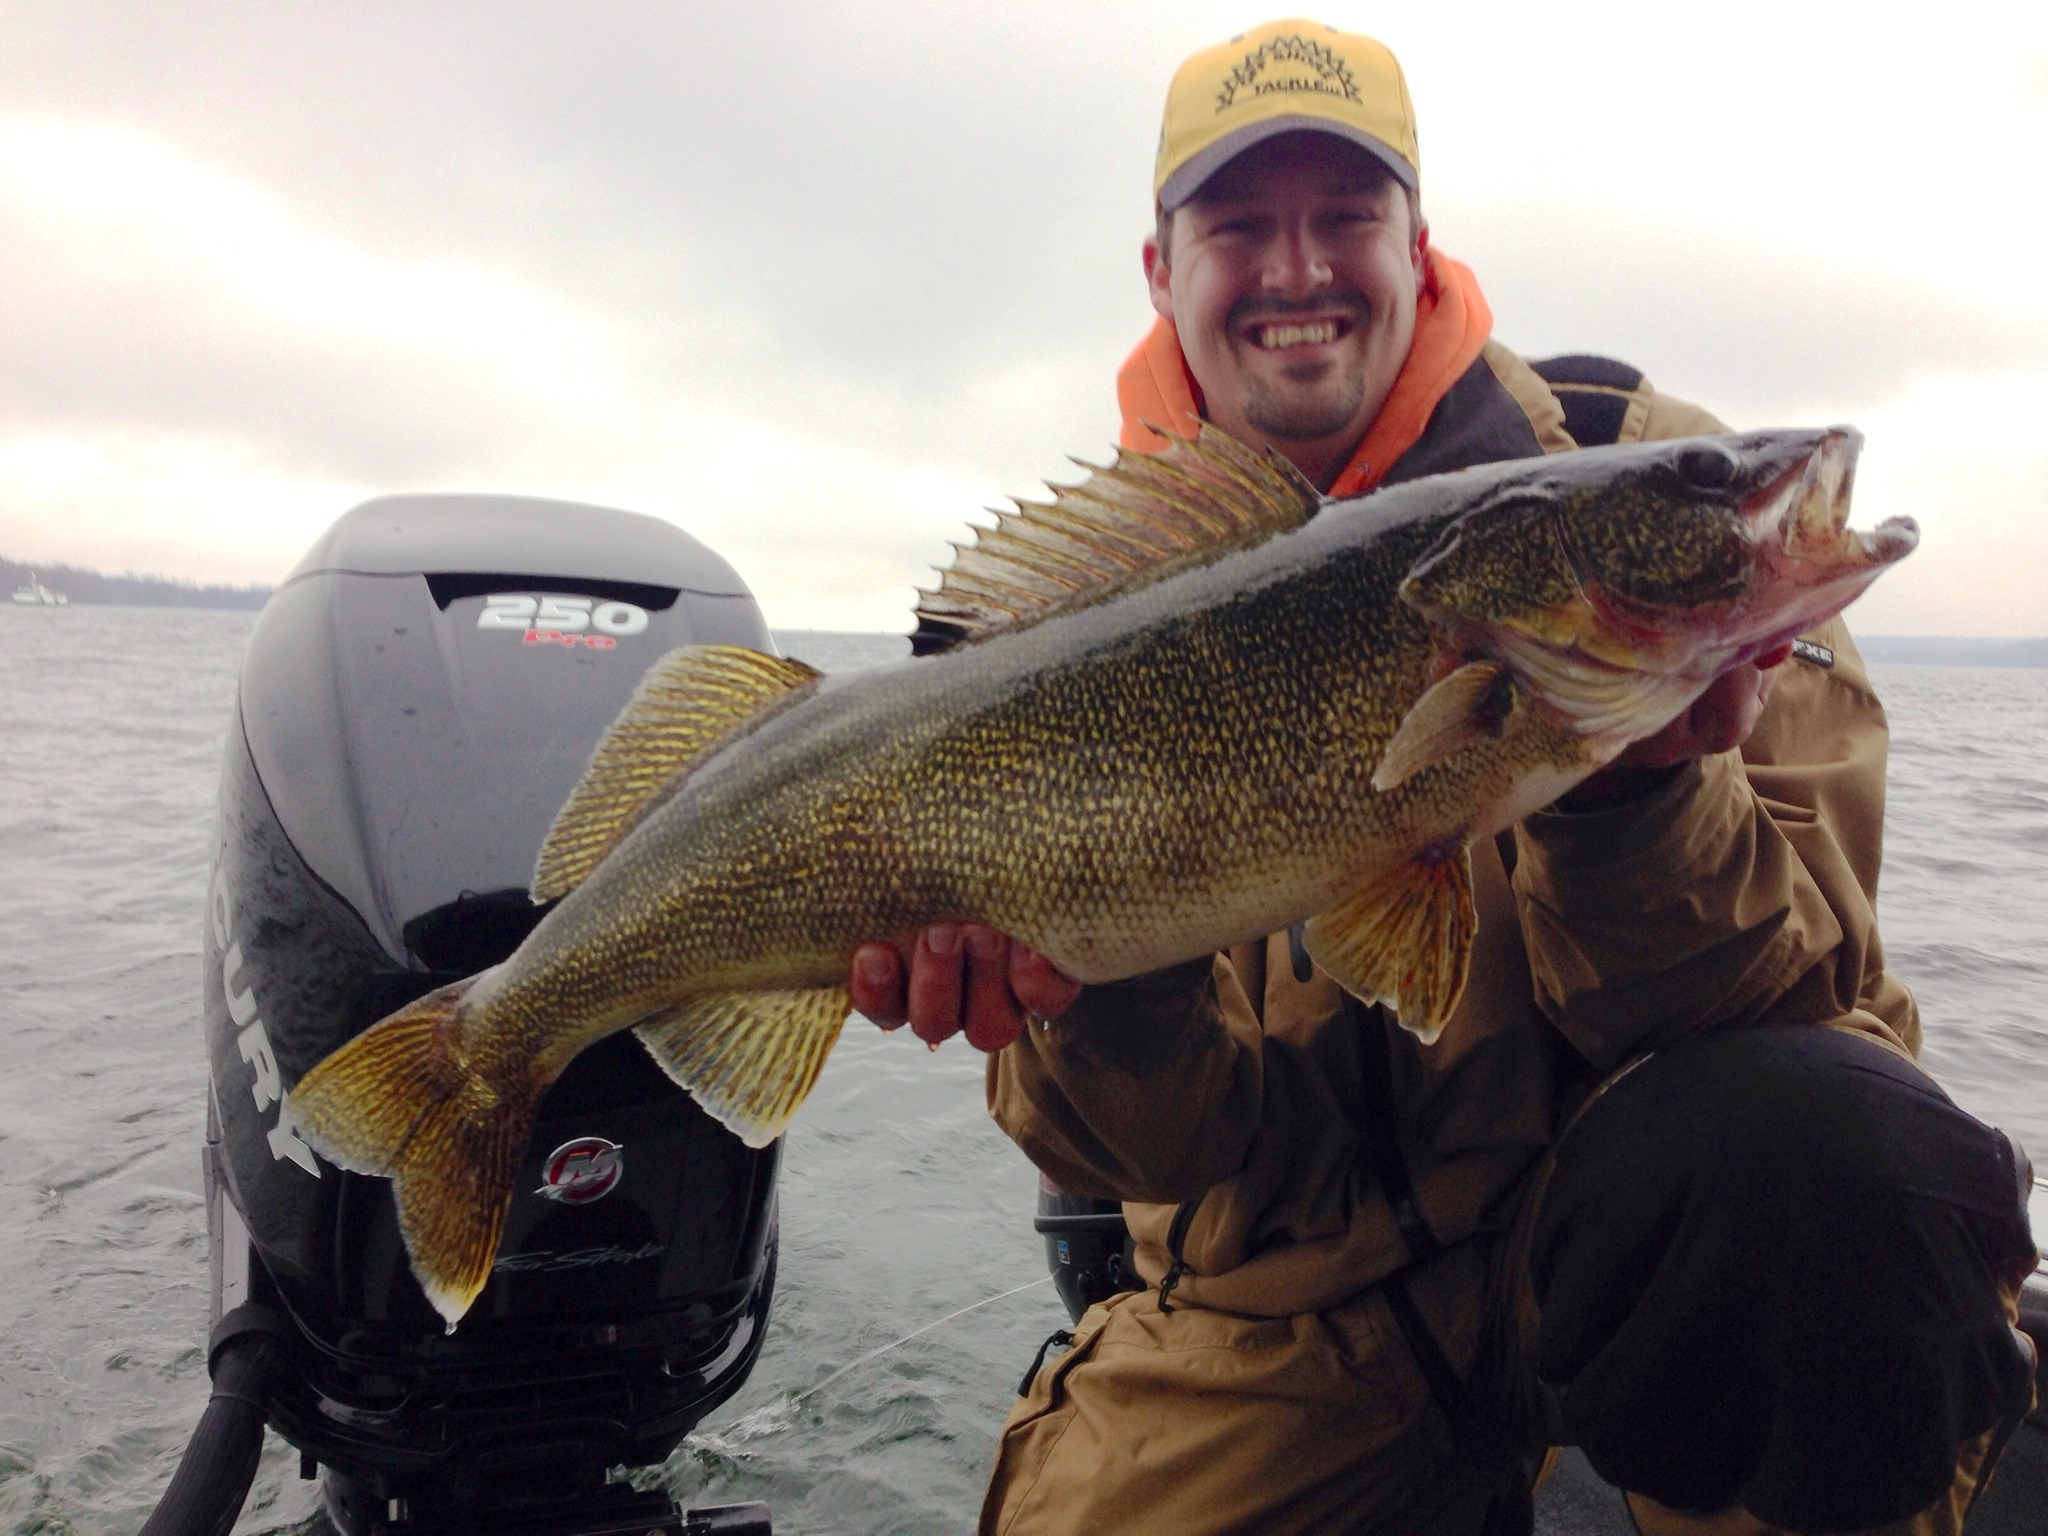 werners adventures bay of quinte fishing charter